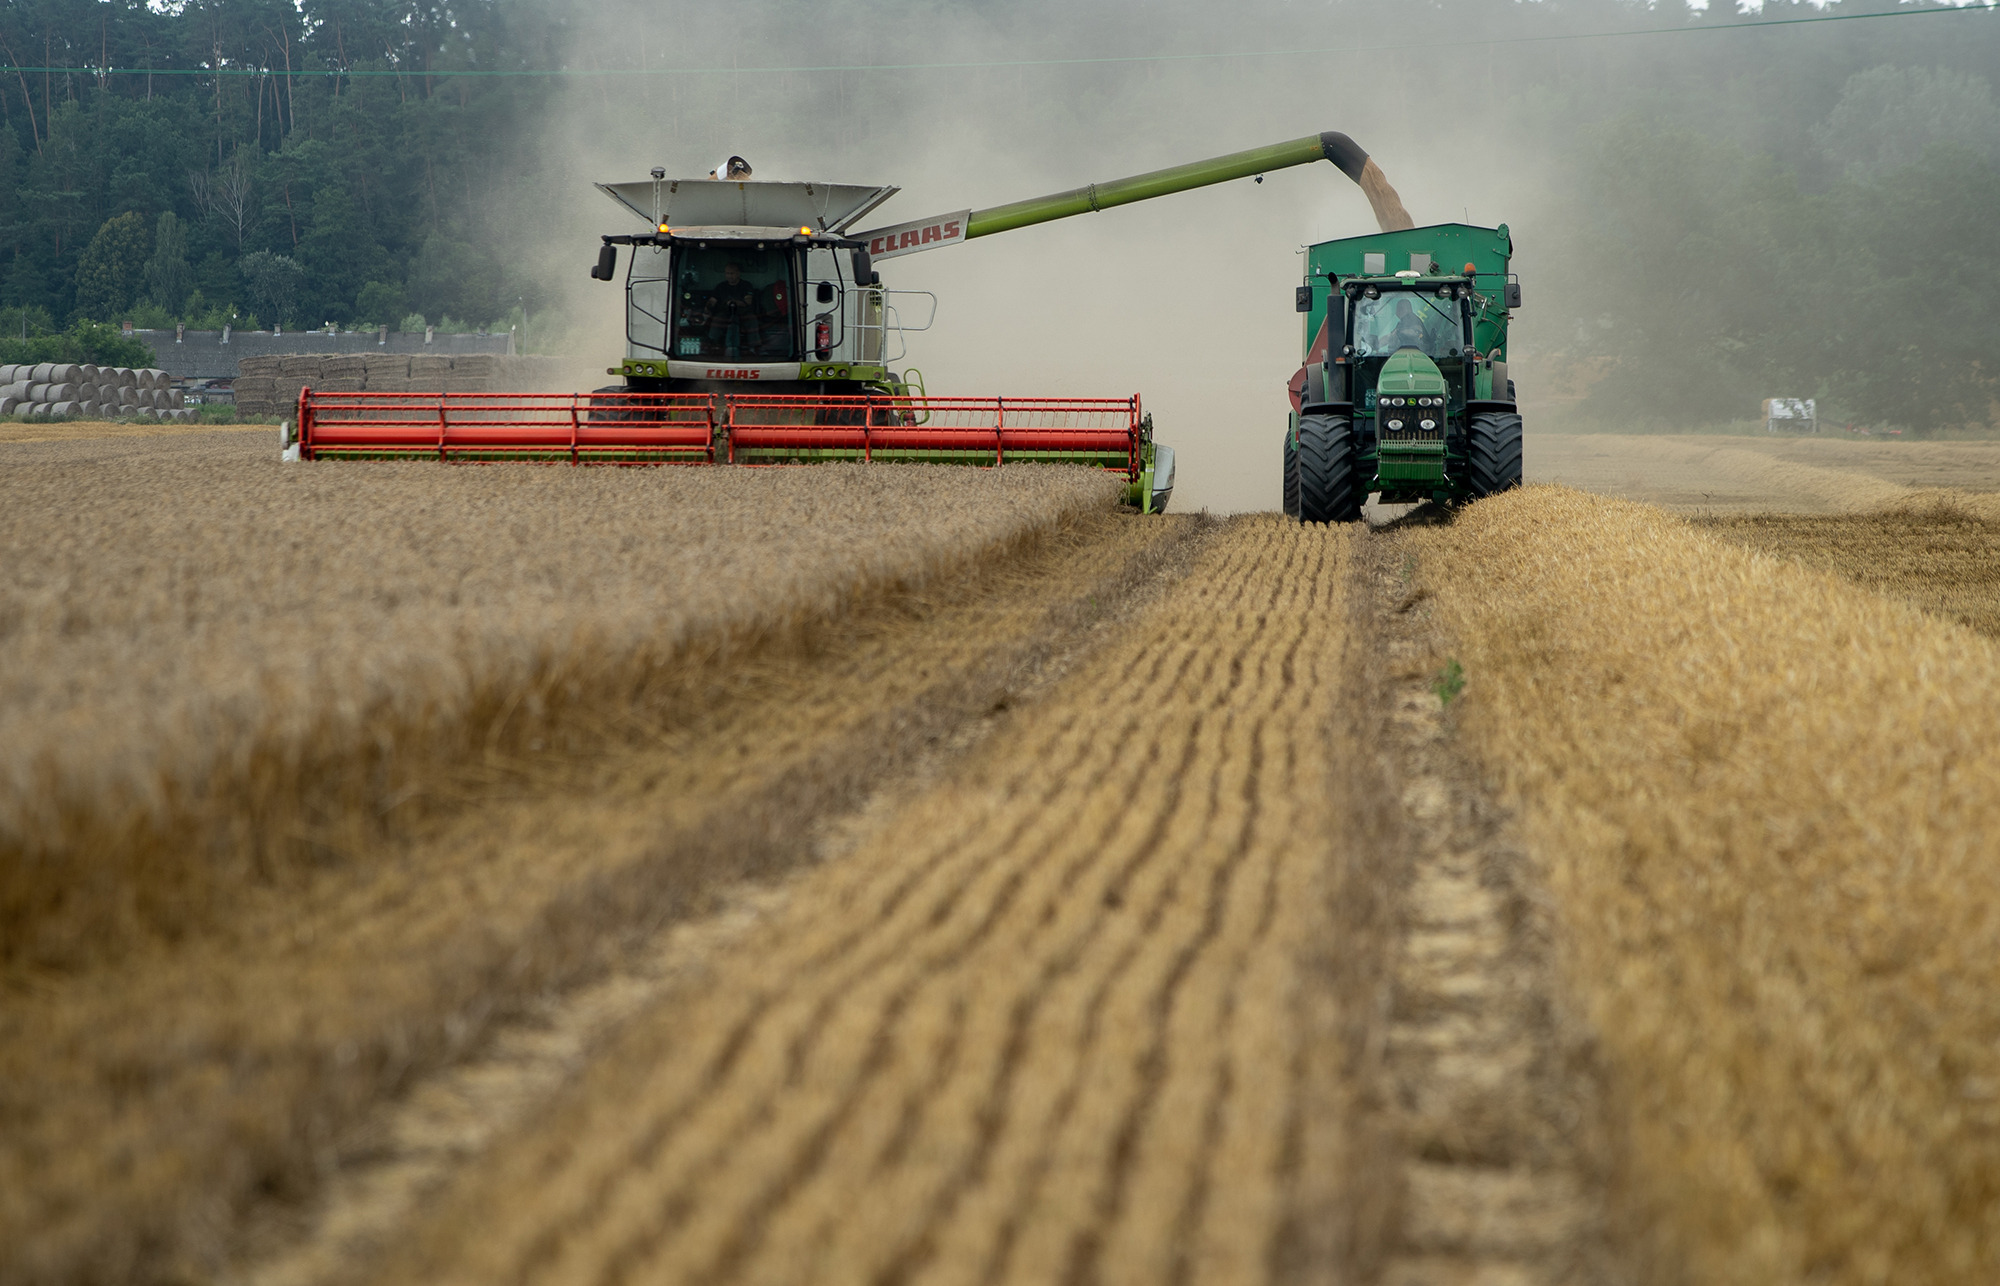 Winter wheat harvest in Pomorskie Voivodship, Poland // Credit: David Kaszlikowski and SatAgro